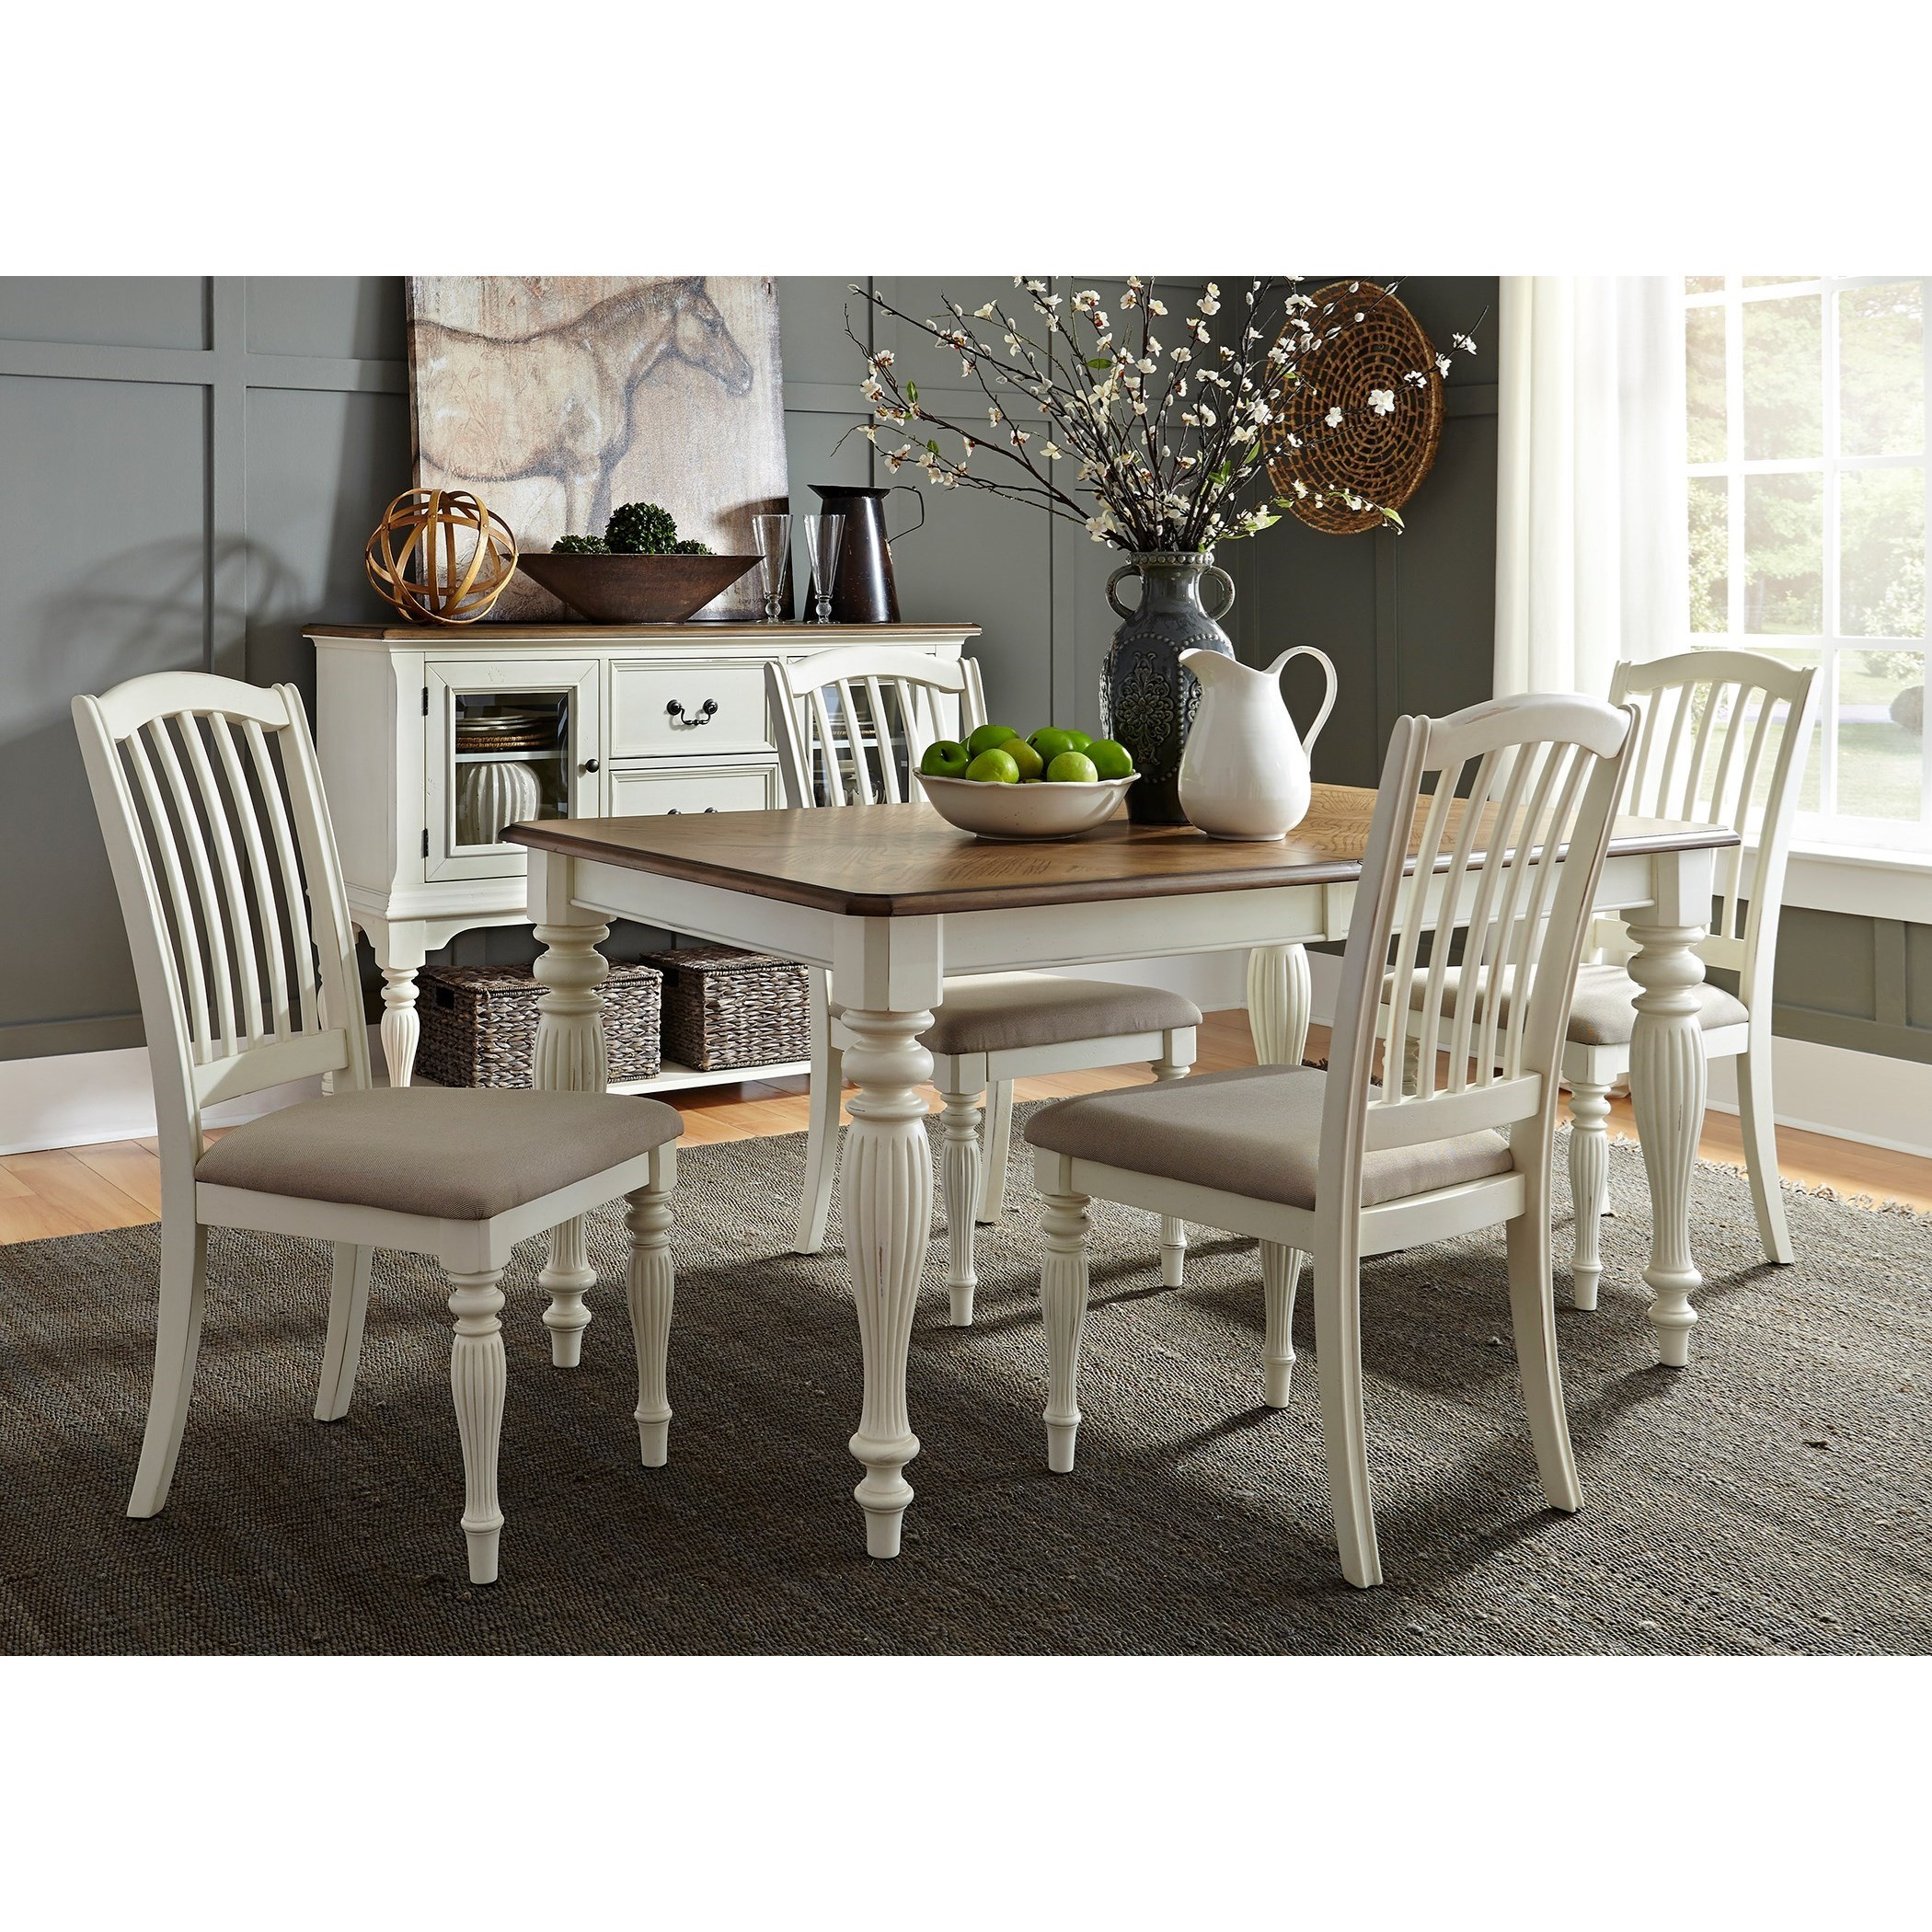 Cumberland Creek Dining Casual Dining Room Group by Liberty Furniture at Northeast Factory Direct